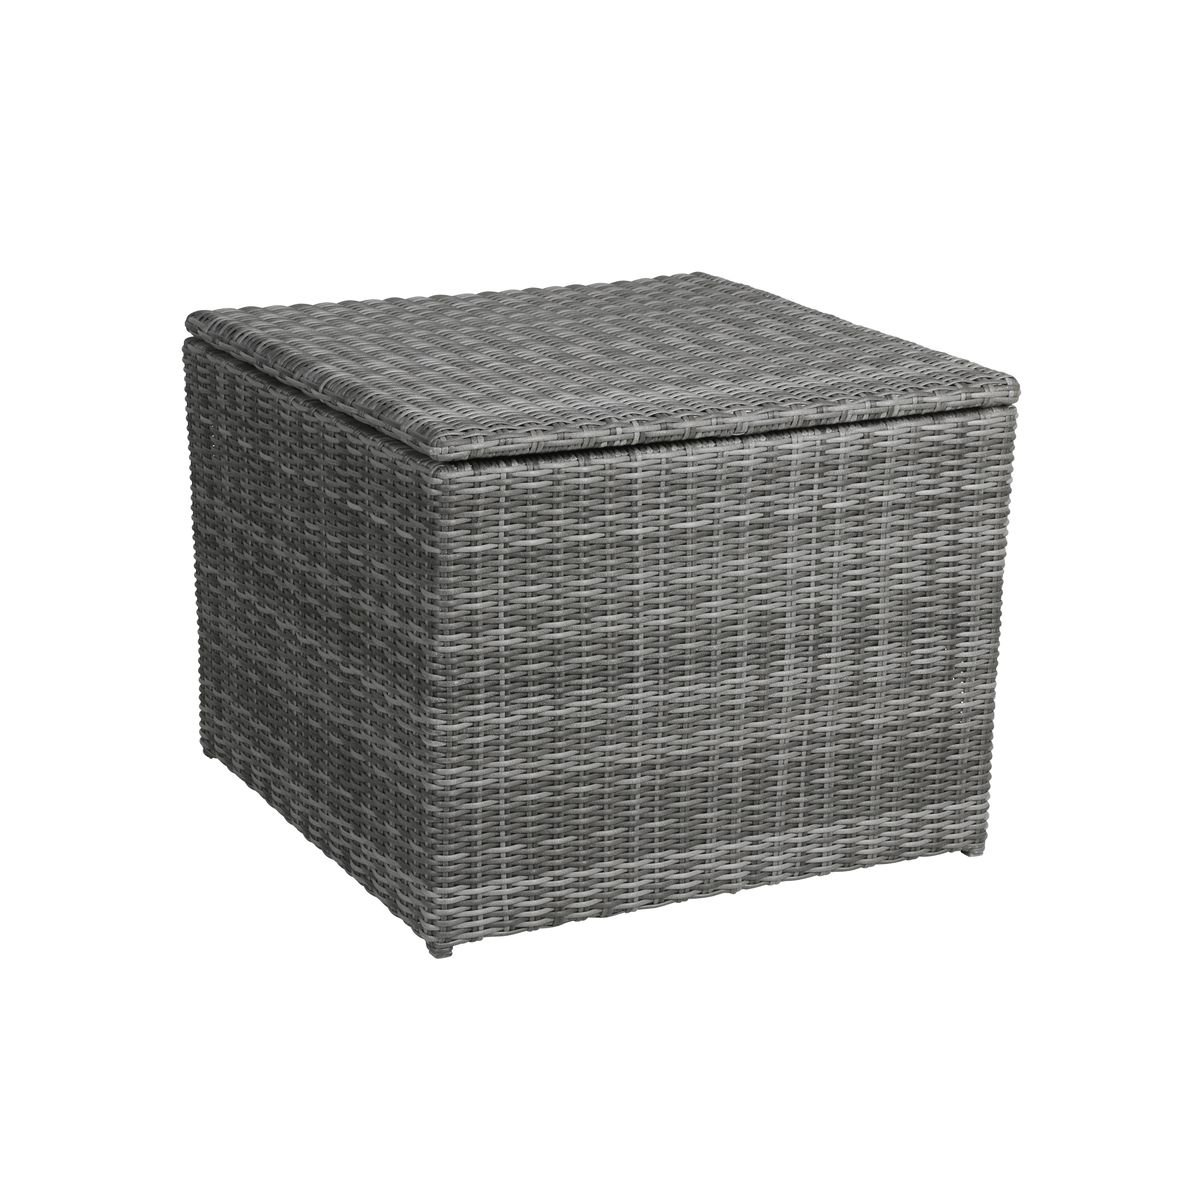 Greemotion auflagenbox bari rattan kissenbox in grau for Greemotion gartenmobel